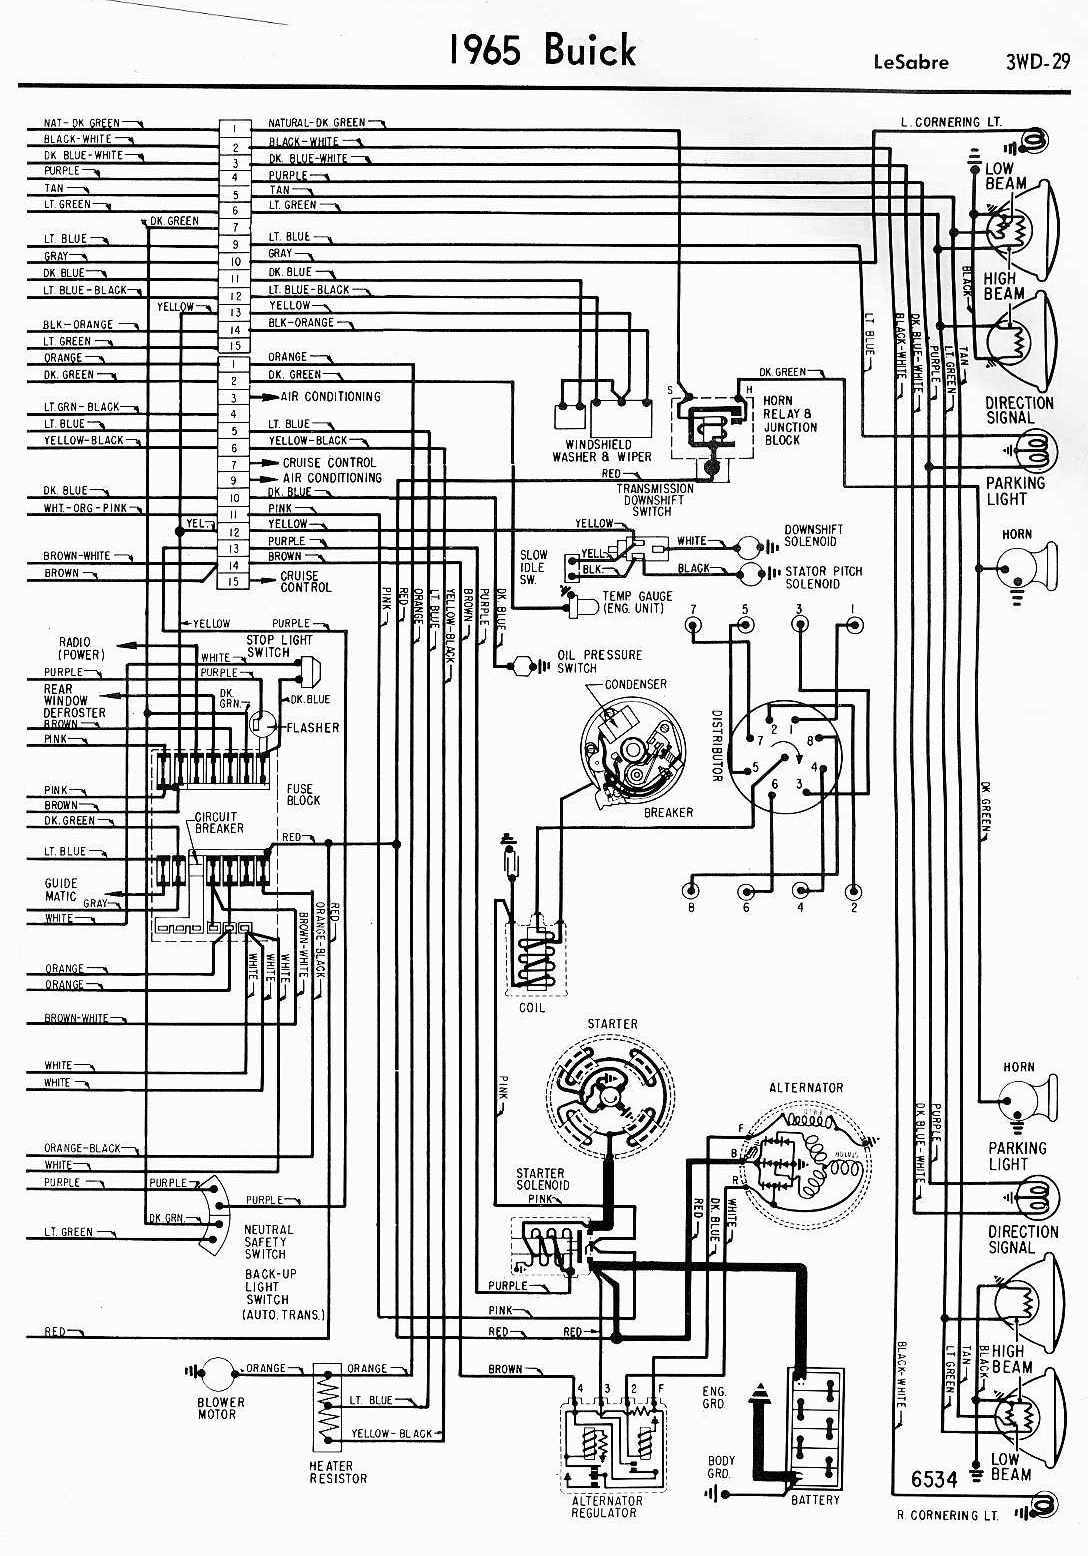 Cj3a Wiring Electrical Diagram Schematics Cj2a Layout 19 Images Diagrams Harness